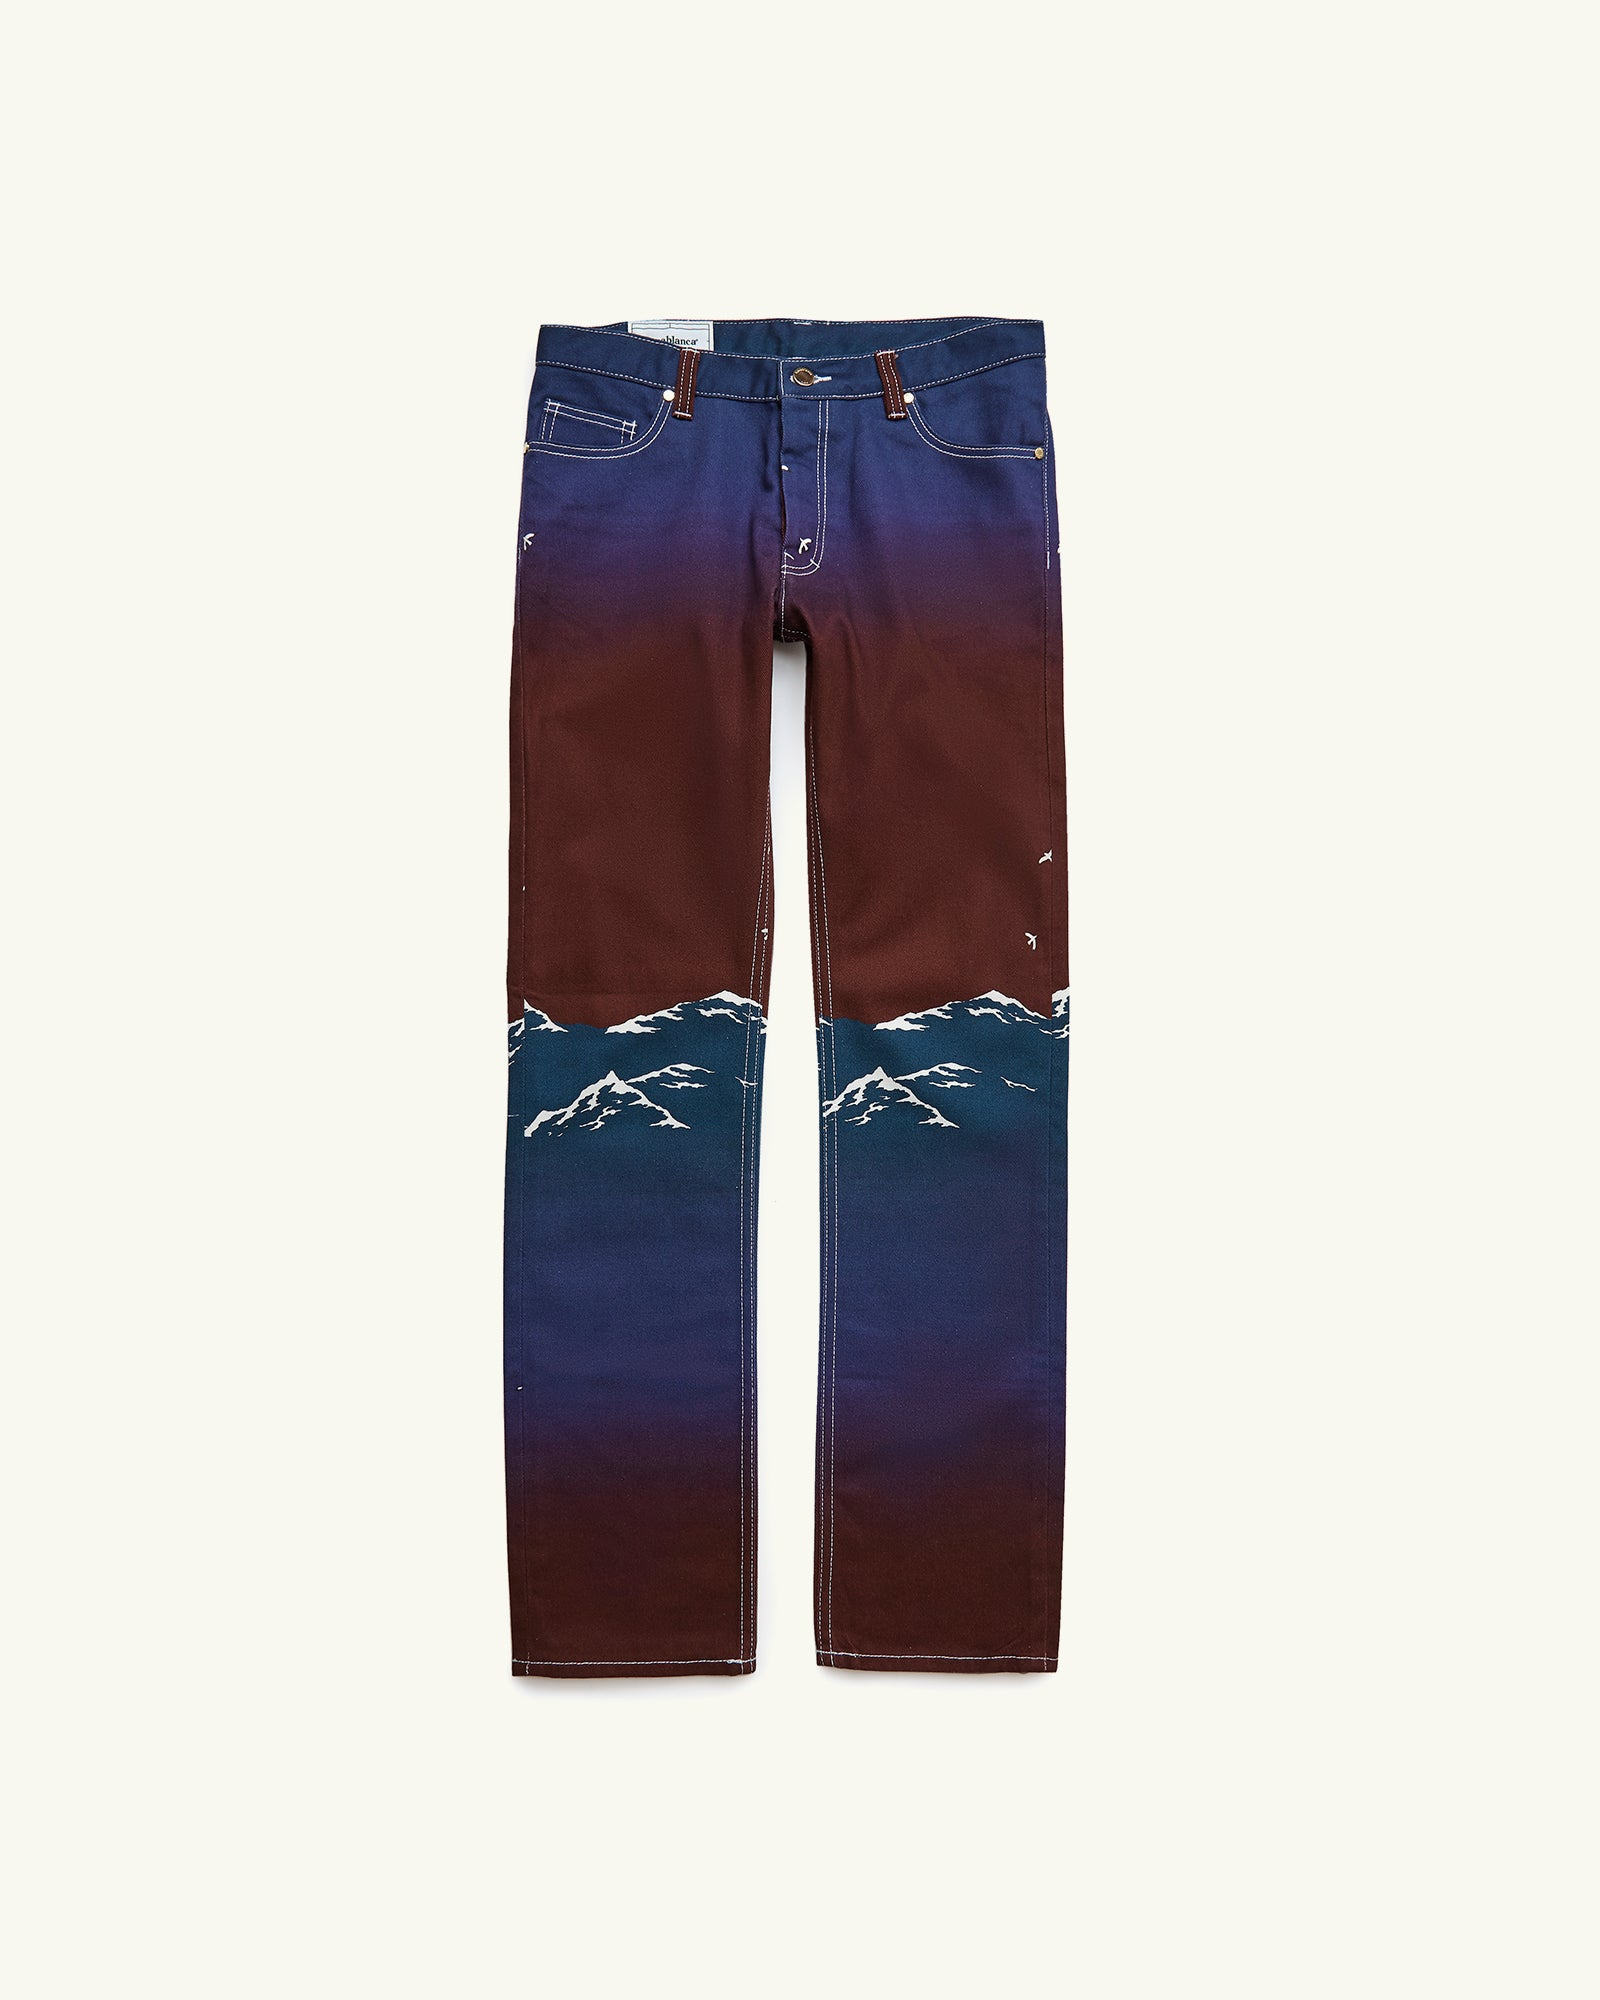 PRINTED DENIM JEANS LE PORT DE CASABLANCA MAROON